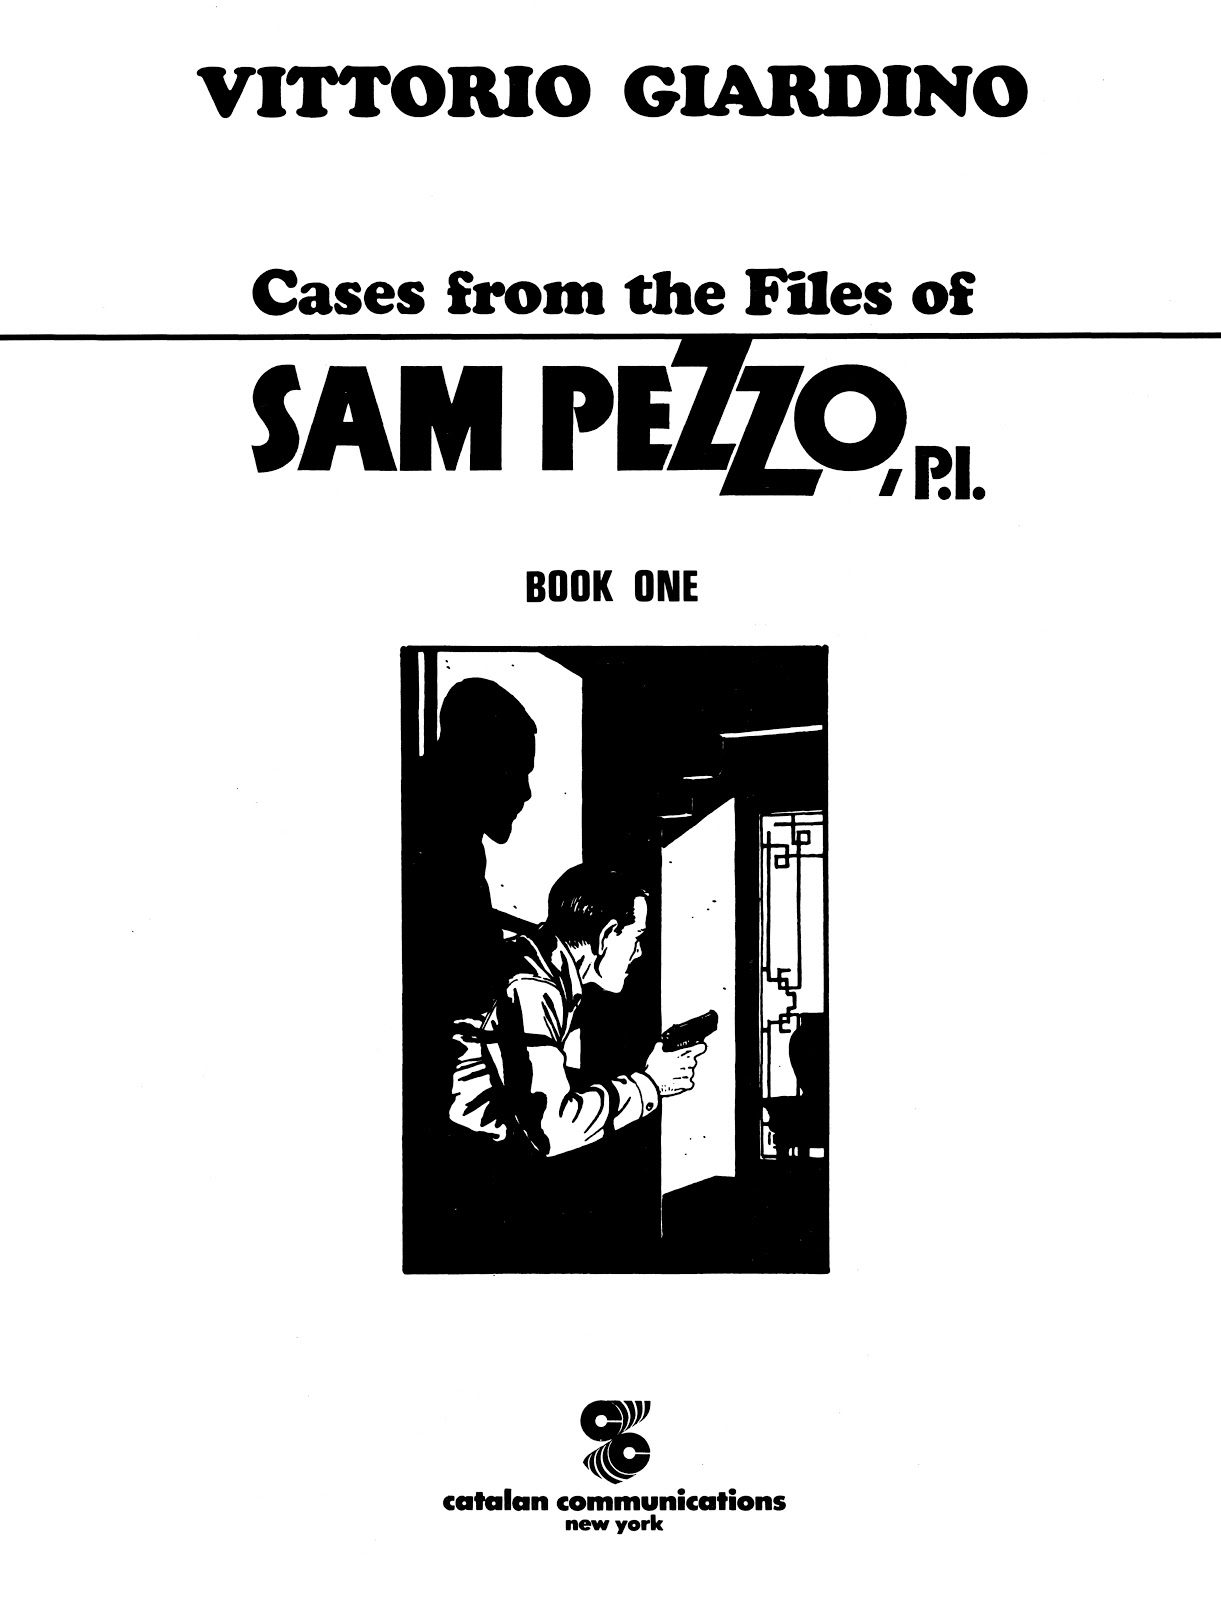 Read online Cases from the Files of Sam Pezzo, P.I. comic -  Issue # Full - 2